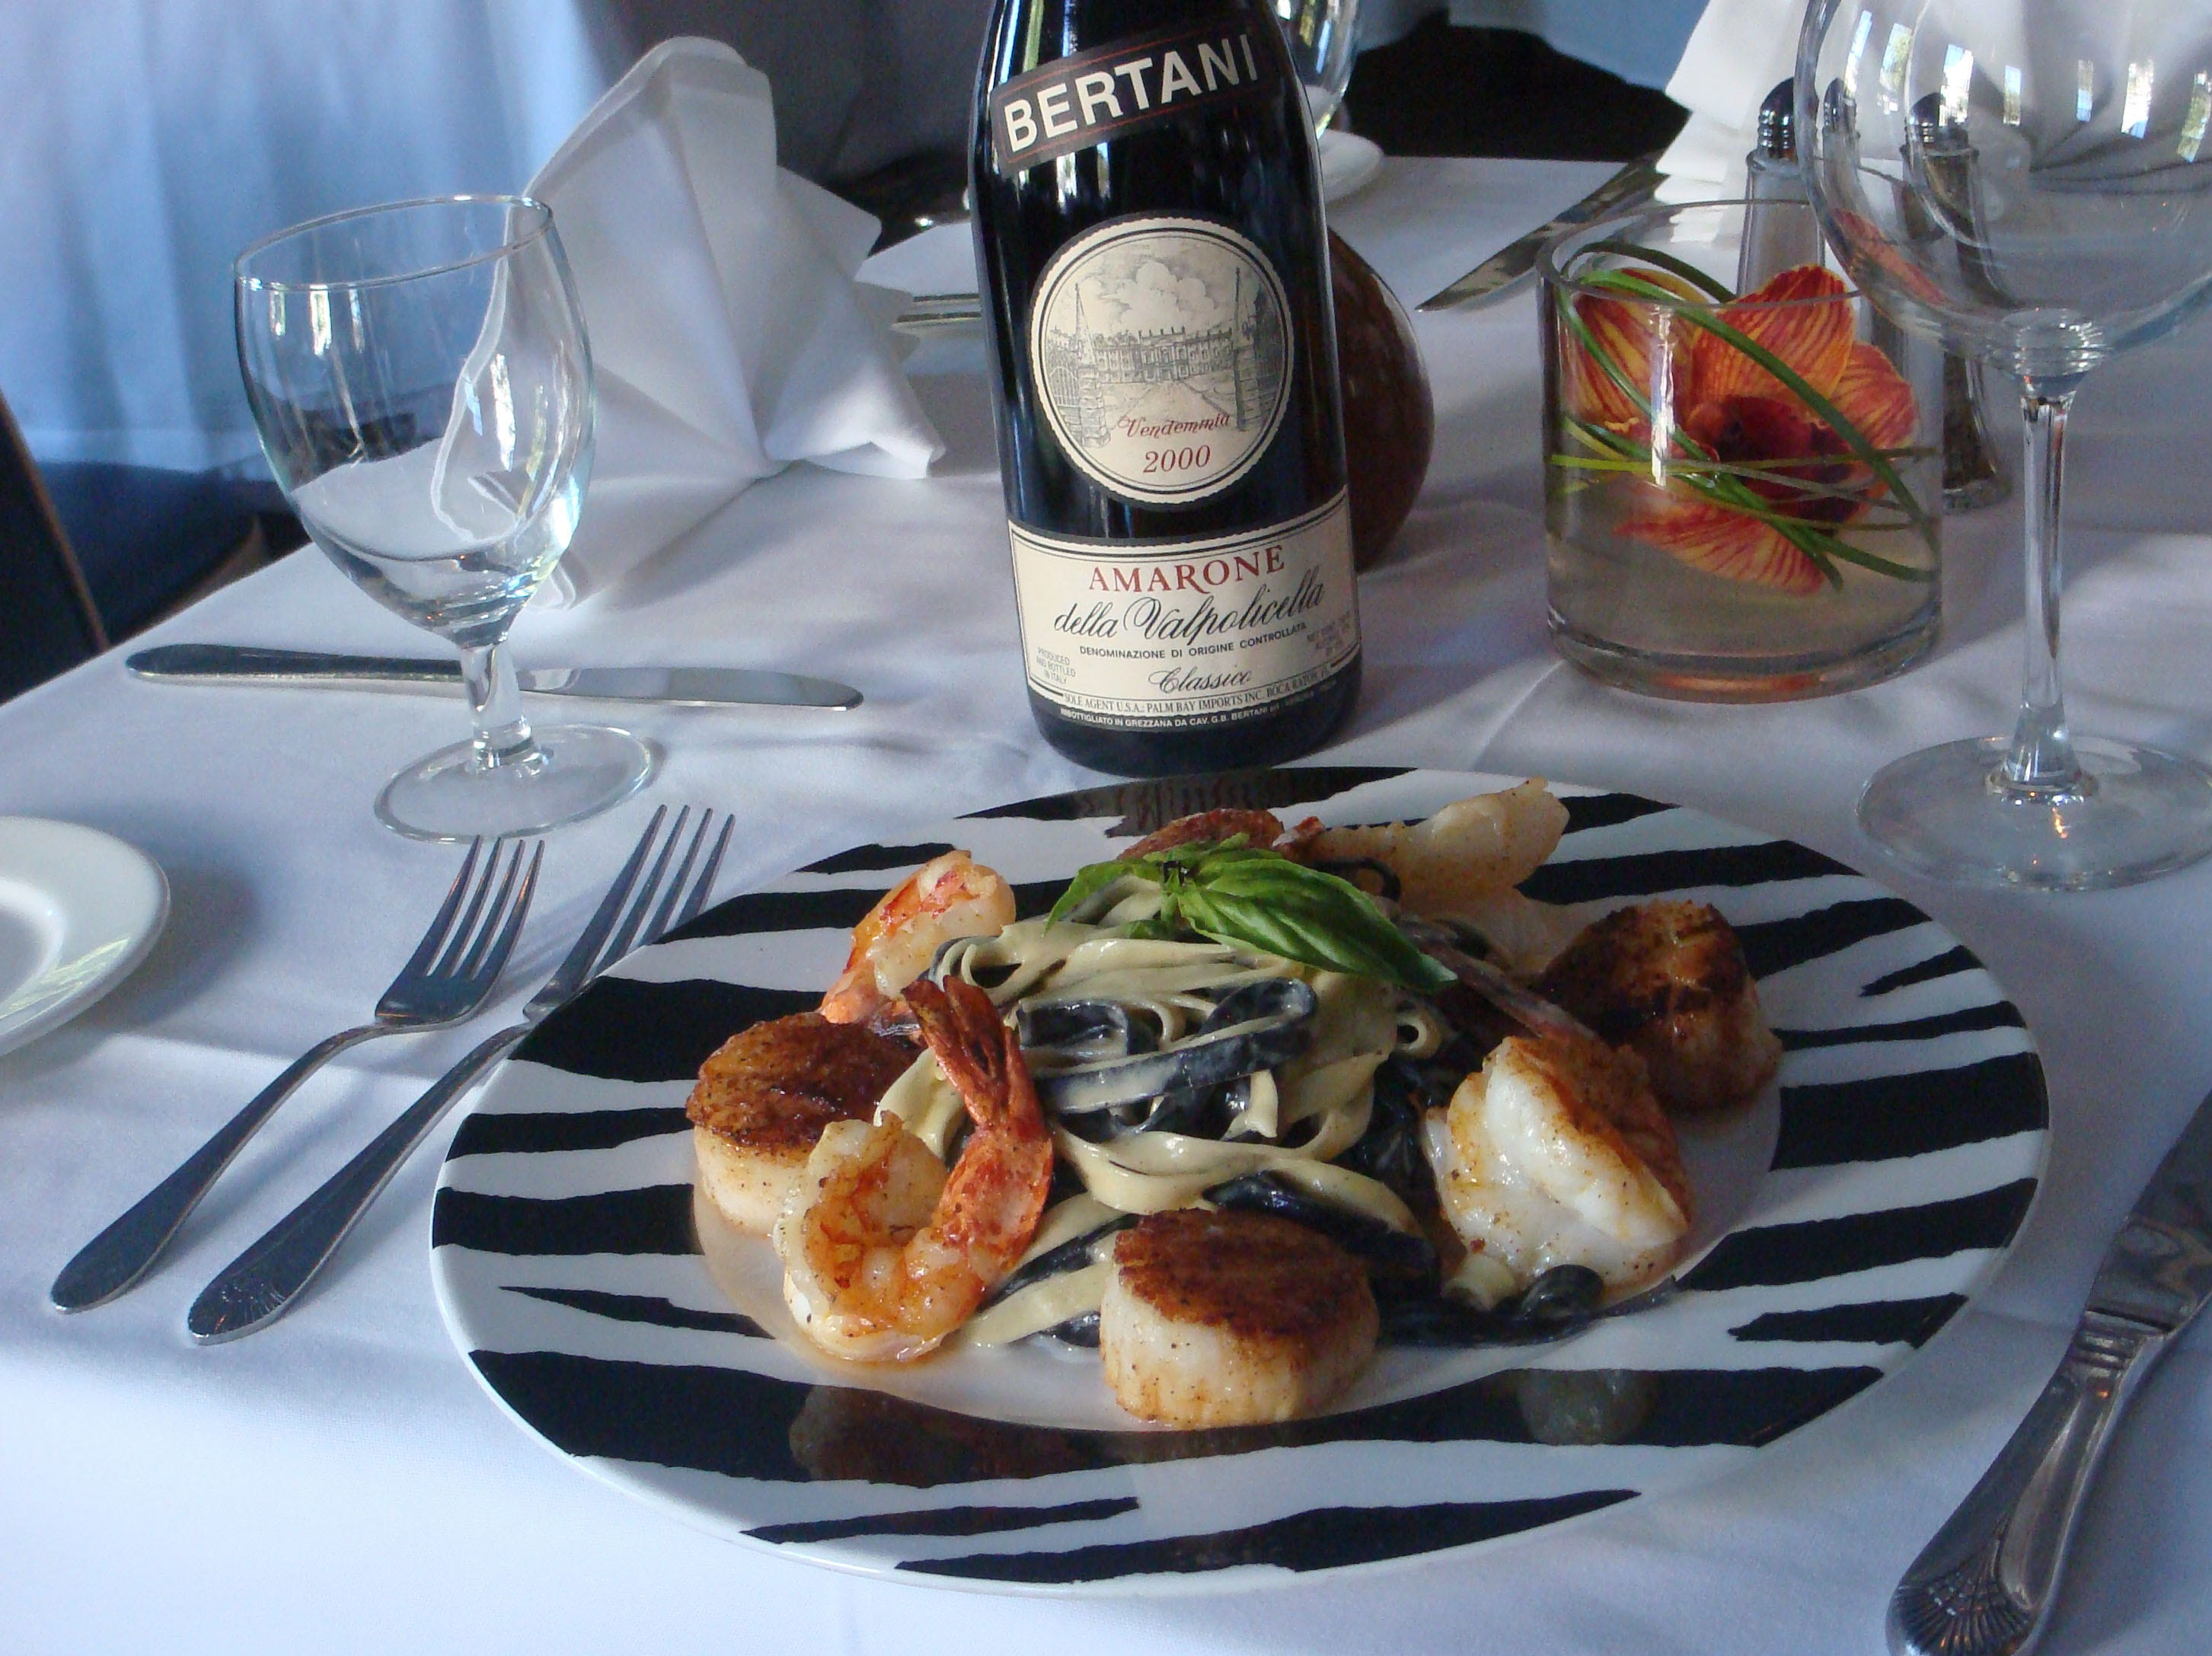 The old Ristorante Zebra in Rehoboth, which featured this dish, Tagliatelle Zebra, has closed. It will soon become an Italian seafood eatery operated by Big Fish Restaurant Group.